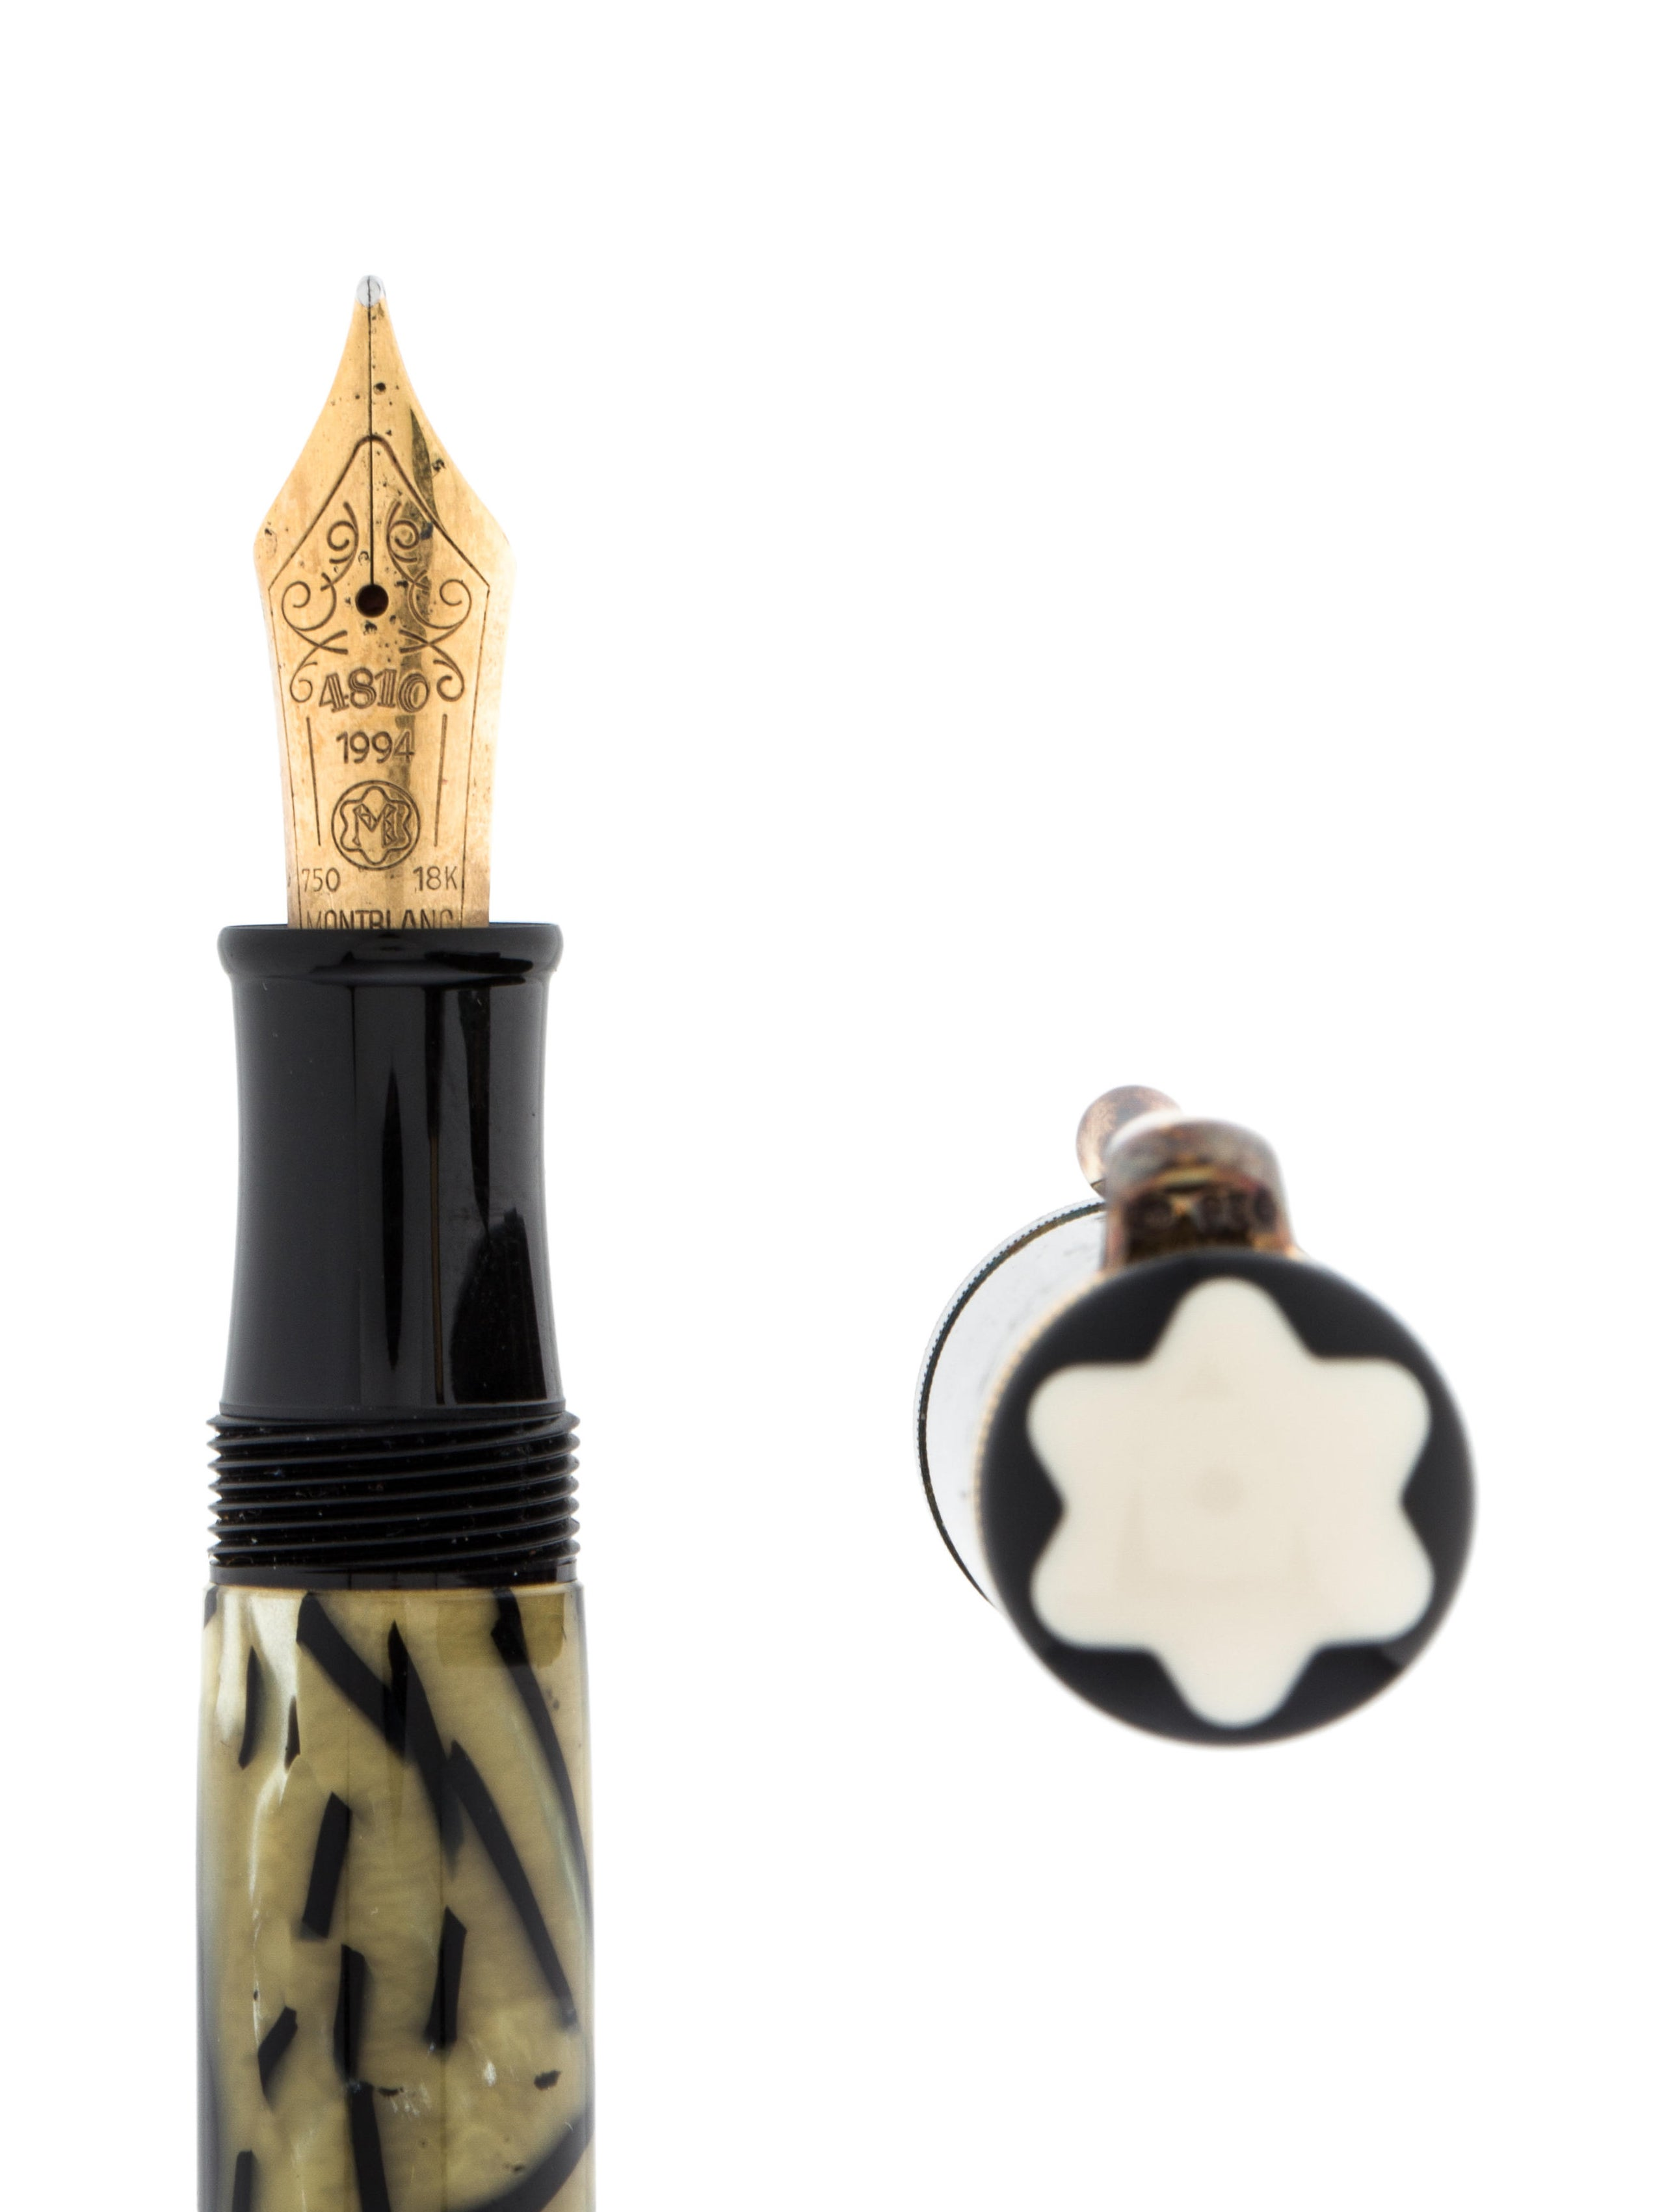 Montblanc meisterst ck oscar wilde fountain pen decor for Art and decoration oscar wilde